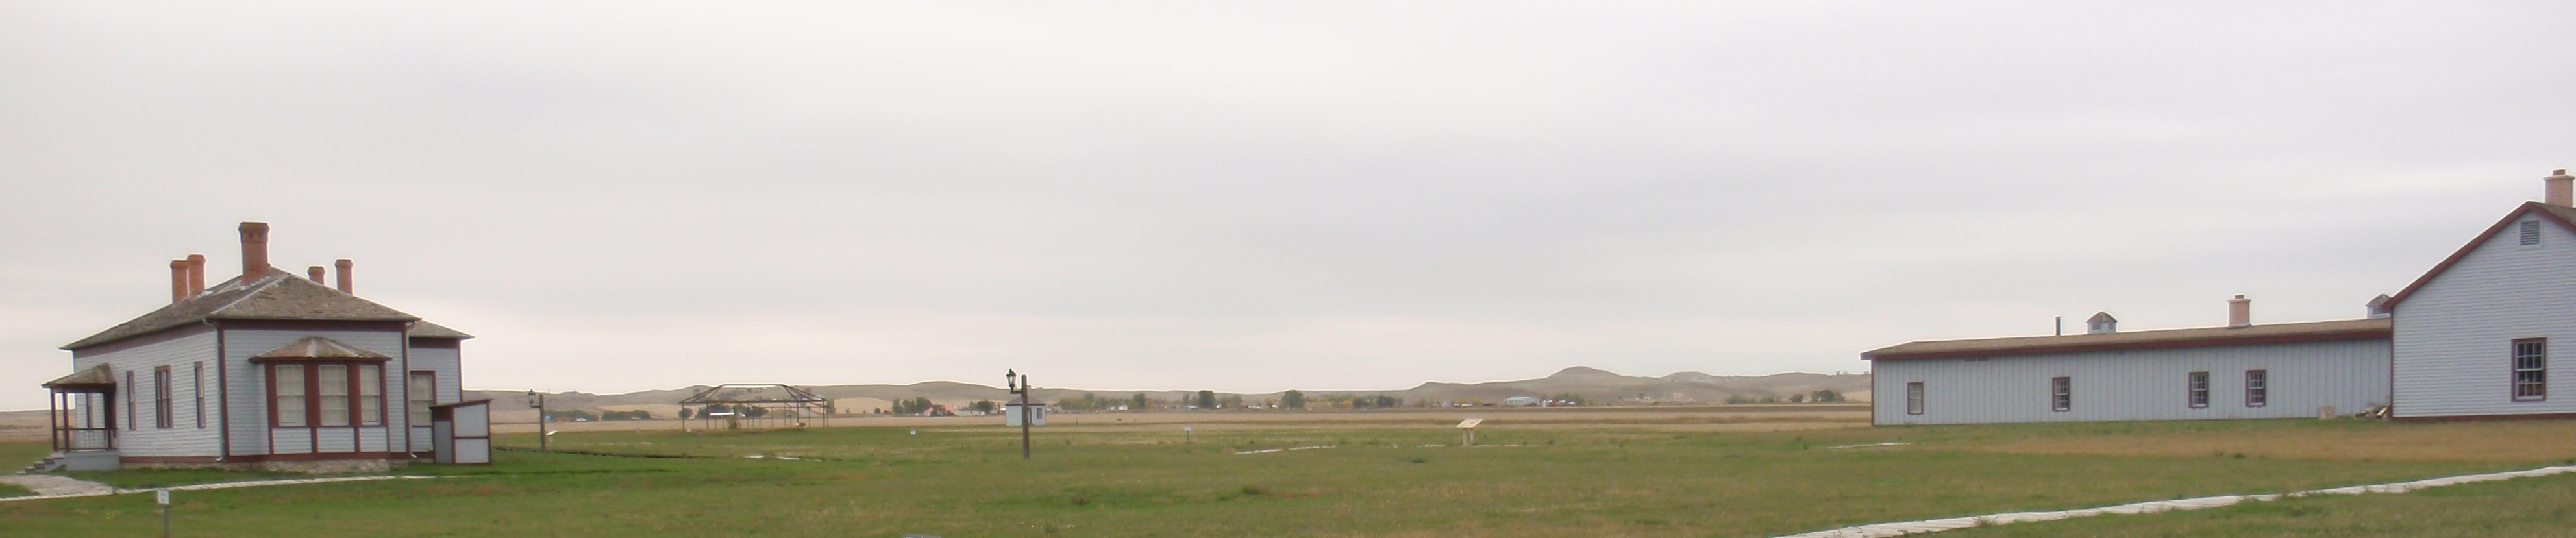 Reconstructed commander's quarters and barracks. There are about 5 well sites in the panorama. Consider that as an indicator of the low density and visibility of oil wells. Photo by James Ulvog.